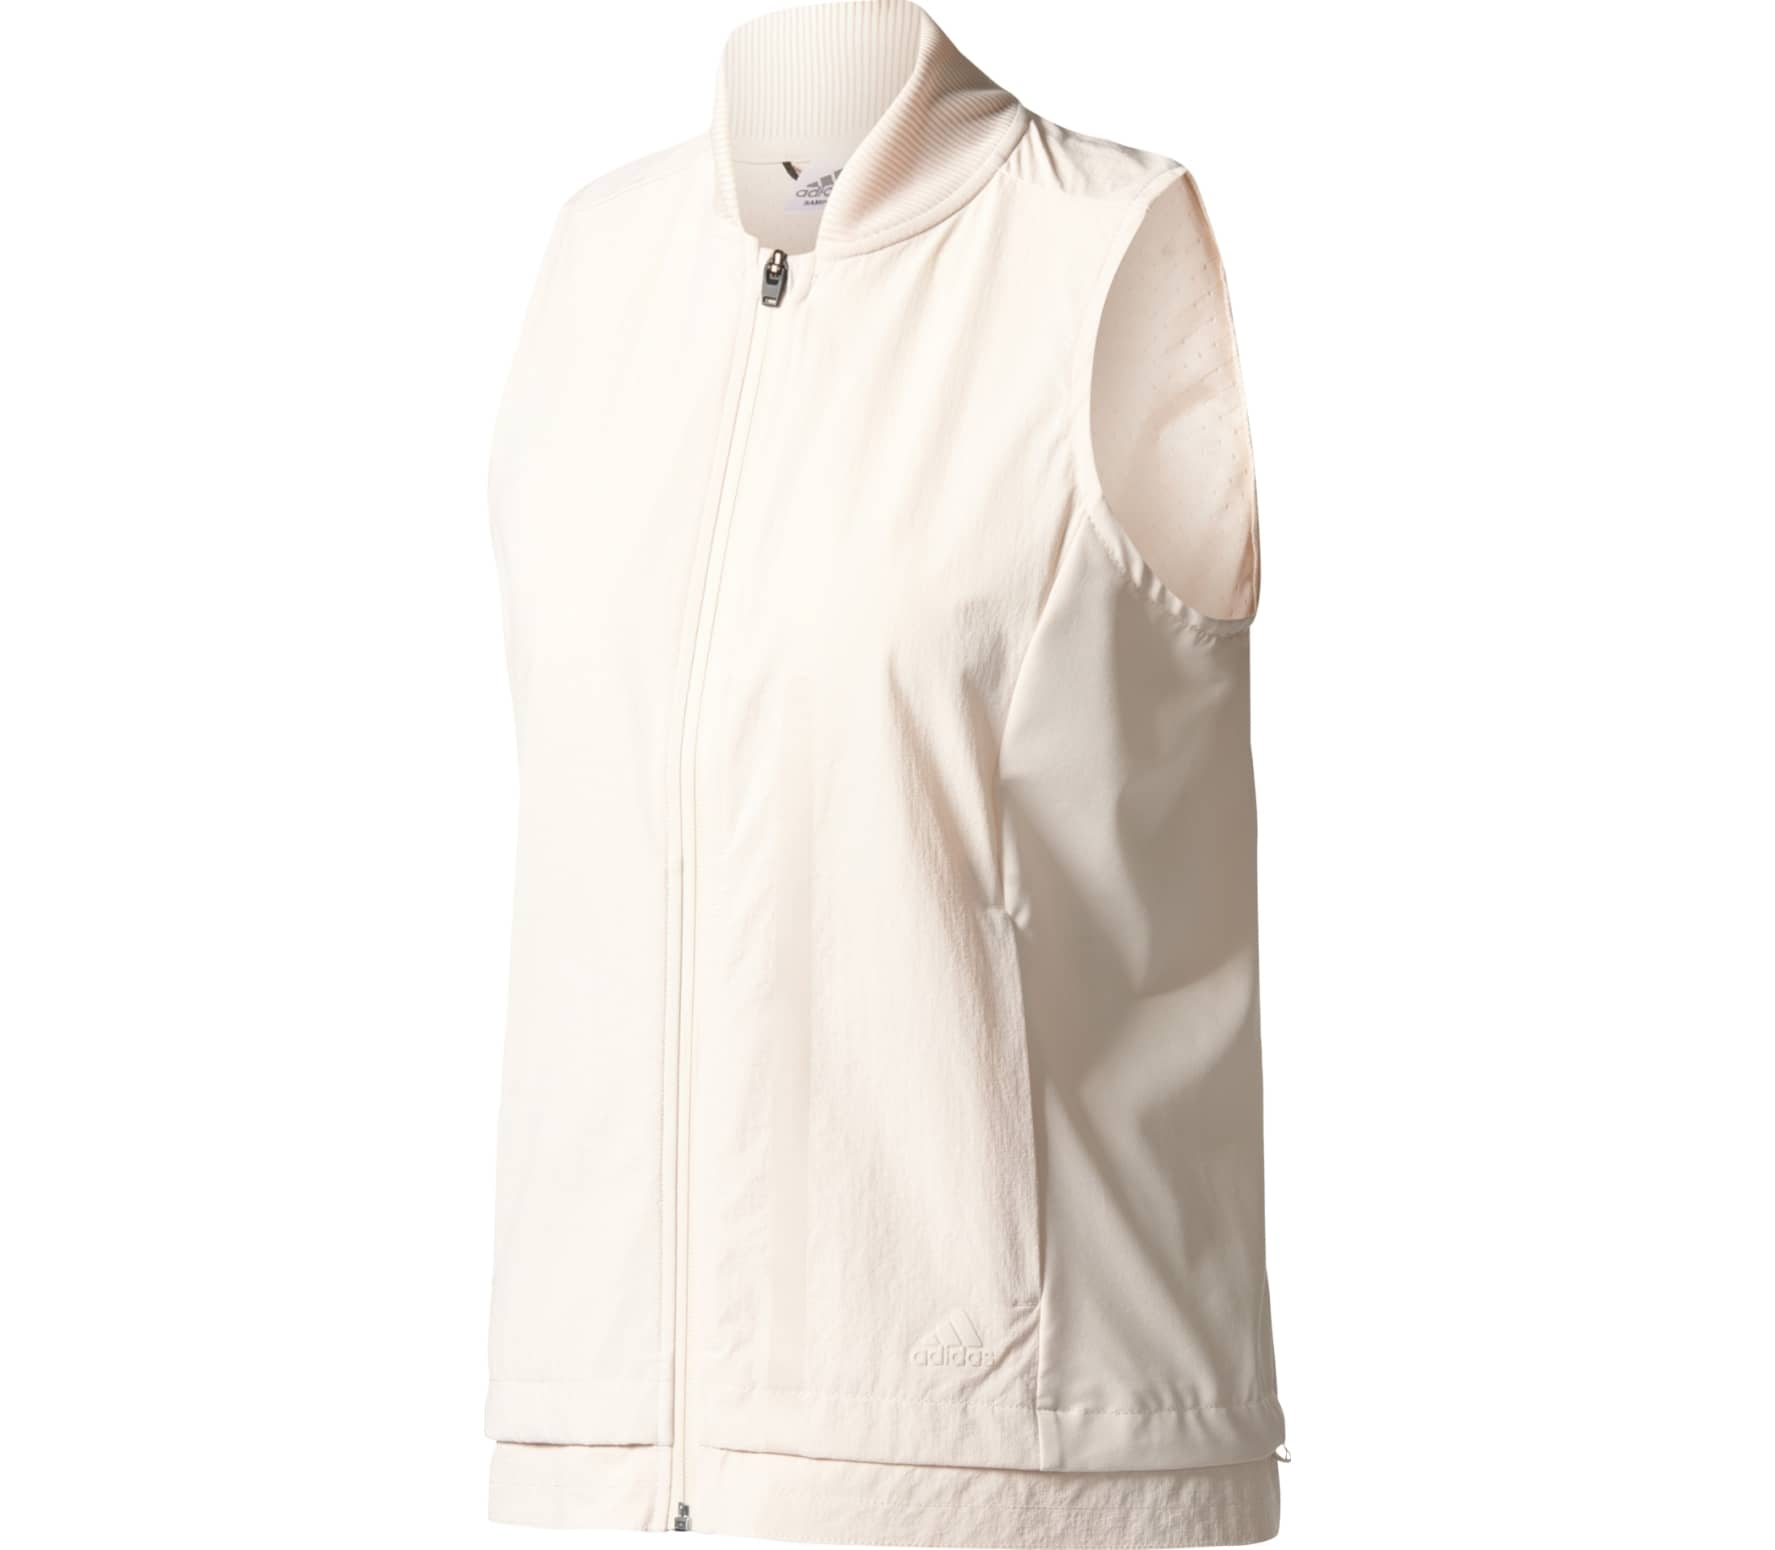 Adidas - Ultra RGY women's running jacket (light pink) - XS thumbnail